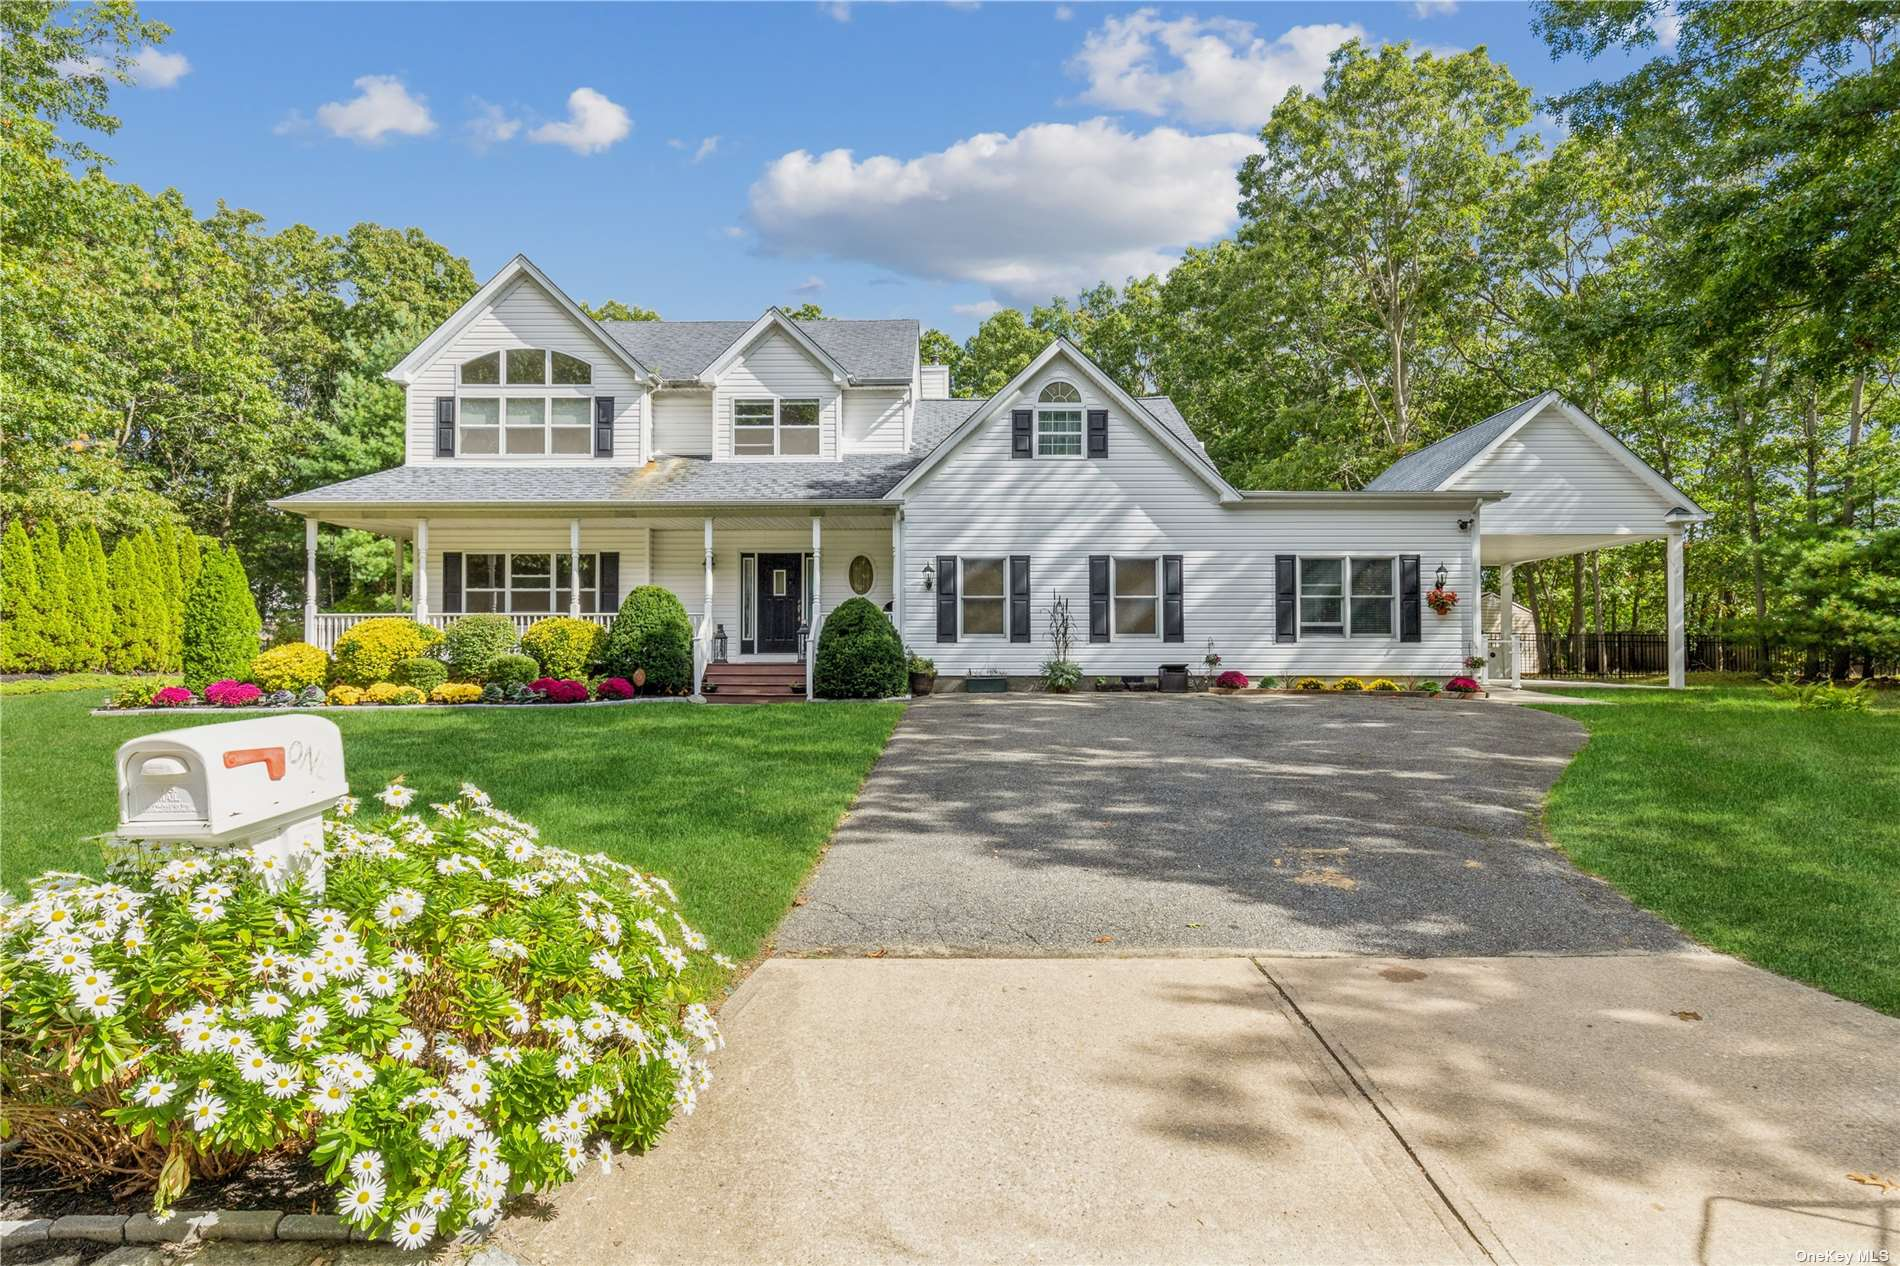 Welcome to this unique and private expanded Colonial in the heart of Old Medford. Walk in from the wrap around porch into a large foyer area that leads into the kitchen, LR and formal DR. Upstairs you will find an open Office area, 2 large bedrooms and a Master BR with an en suite bath. W/D and WIC also can be found on the second floor. Full basement with utilities and plenty of storage. The extension of this 4 bedroom, 4 bath home includes ADA Compliant ramp &  railing,  open floor plan, eye level windows, Barrier free roll in shower with a double drain system, a separate Bliss Spa as well as an additional W/D.  An accessible entry ramp is located under the Covered Carport outside the separate entrance. This beautiful home is situated on a very private corner to corner lot which features a new 16x32 salt water in ground pool surrounded by paver stones. A true Gem!